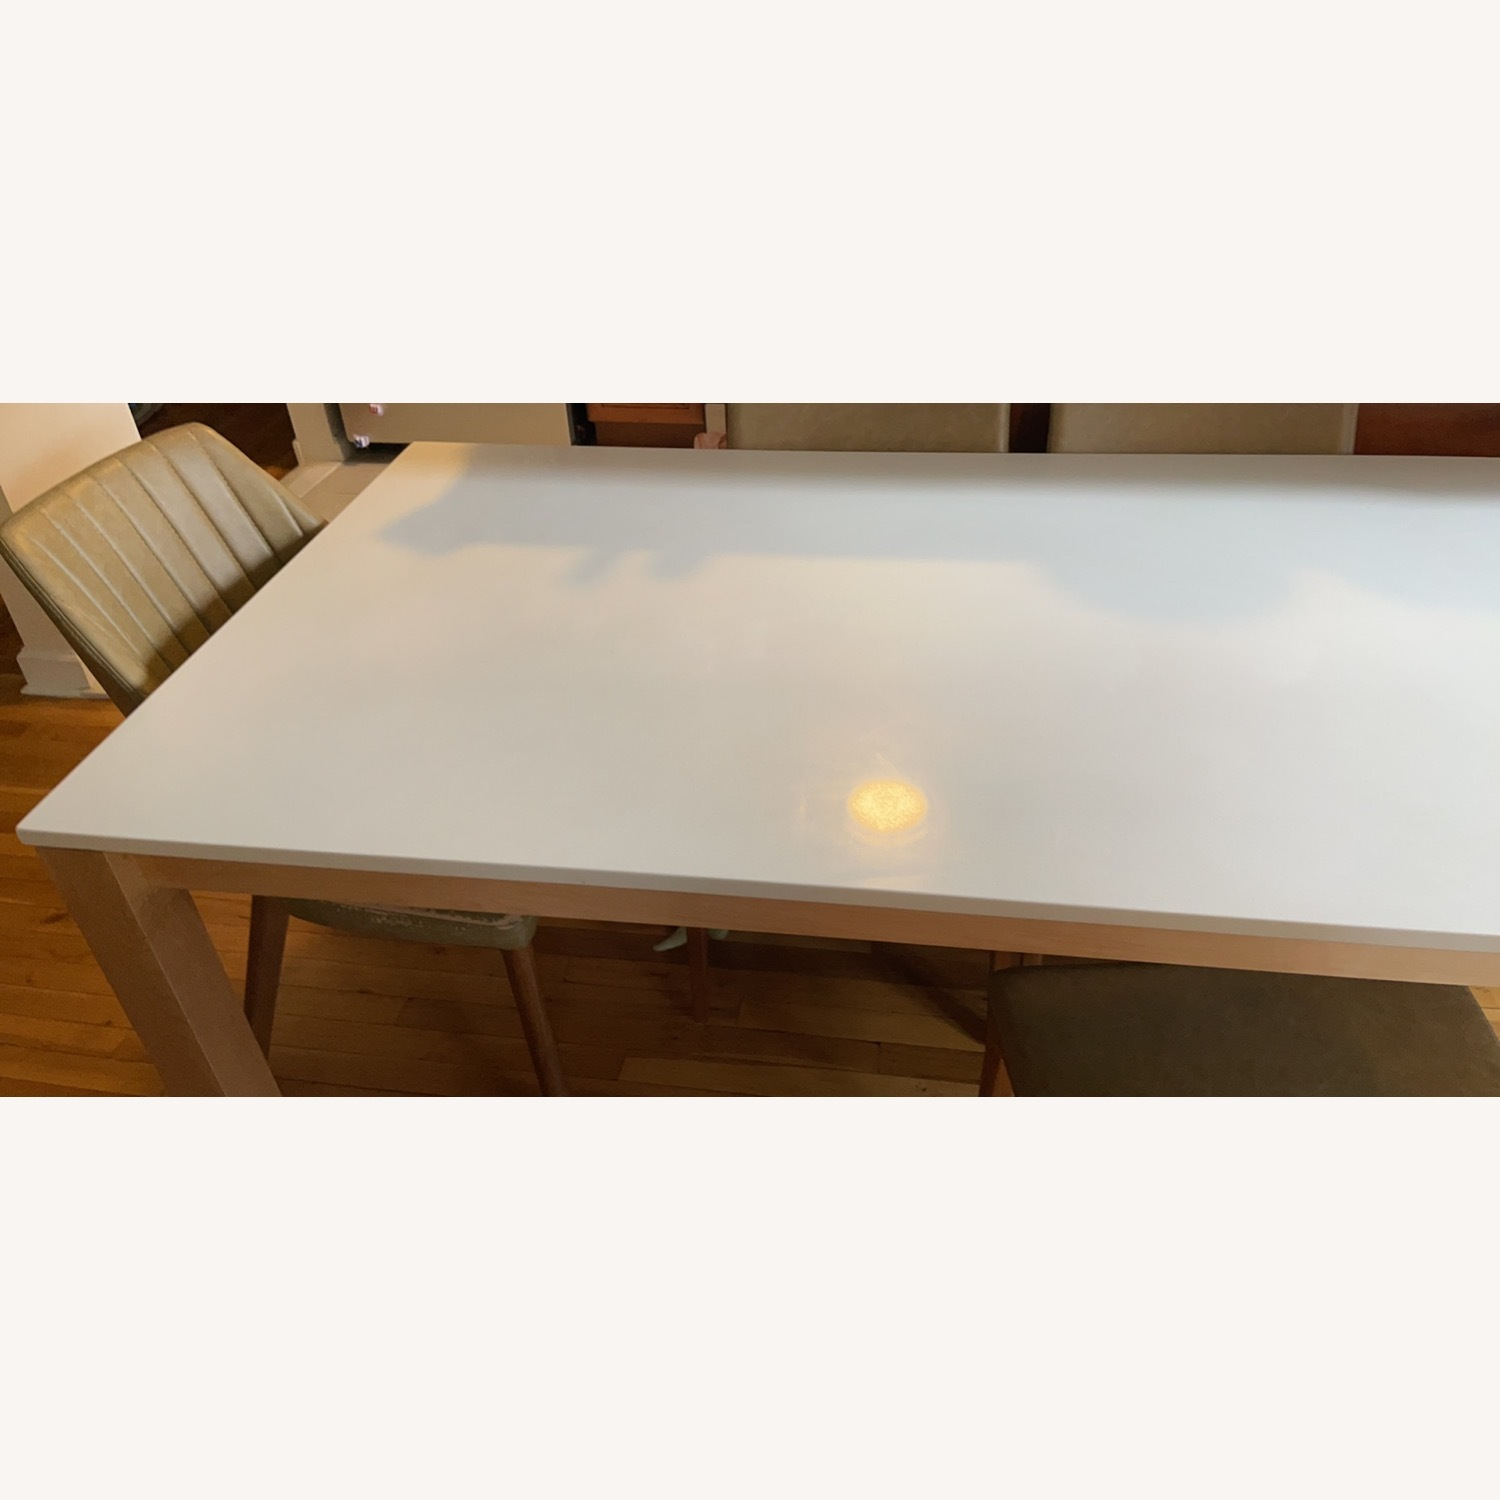 Room & Board White Quartz Top Linden Dining Table - image-5